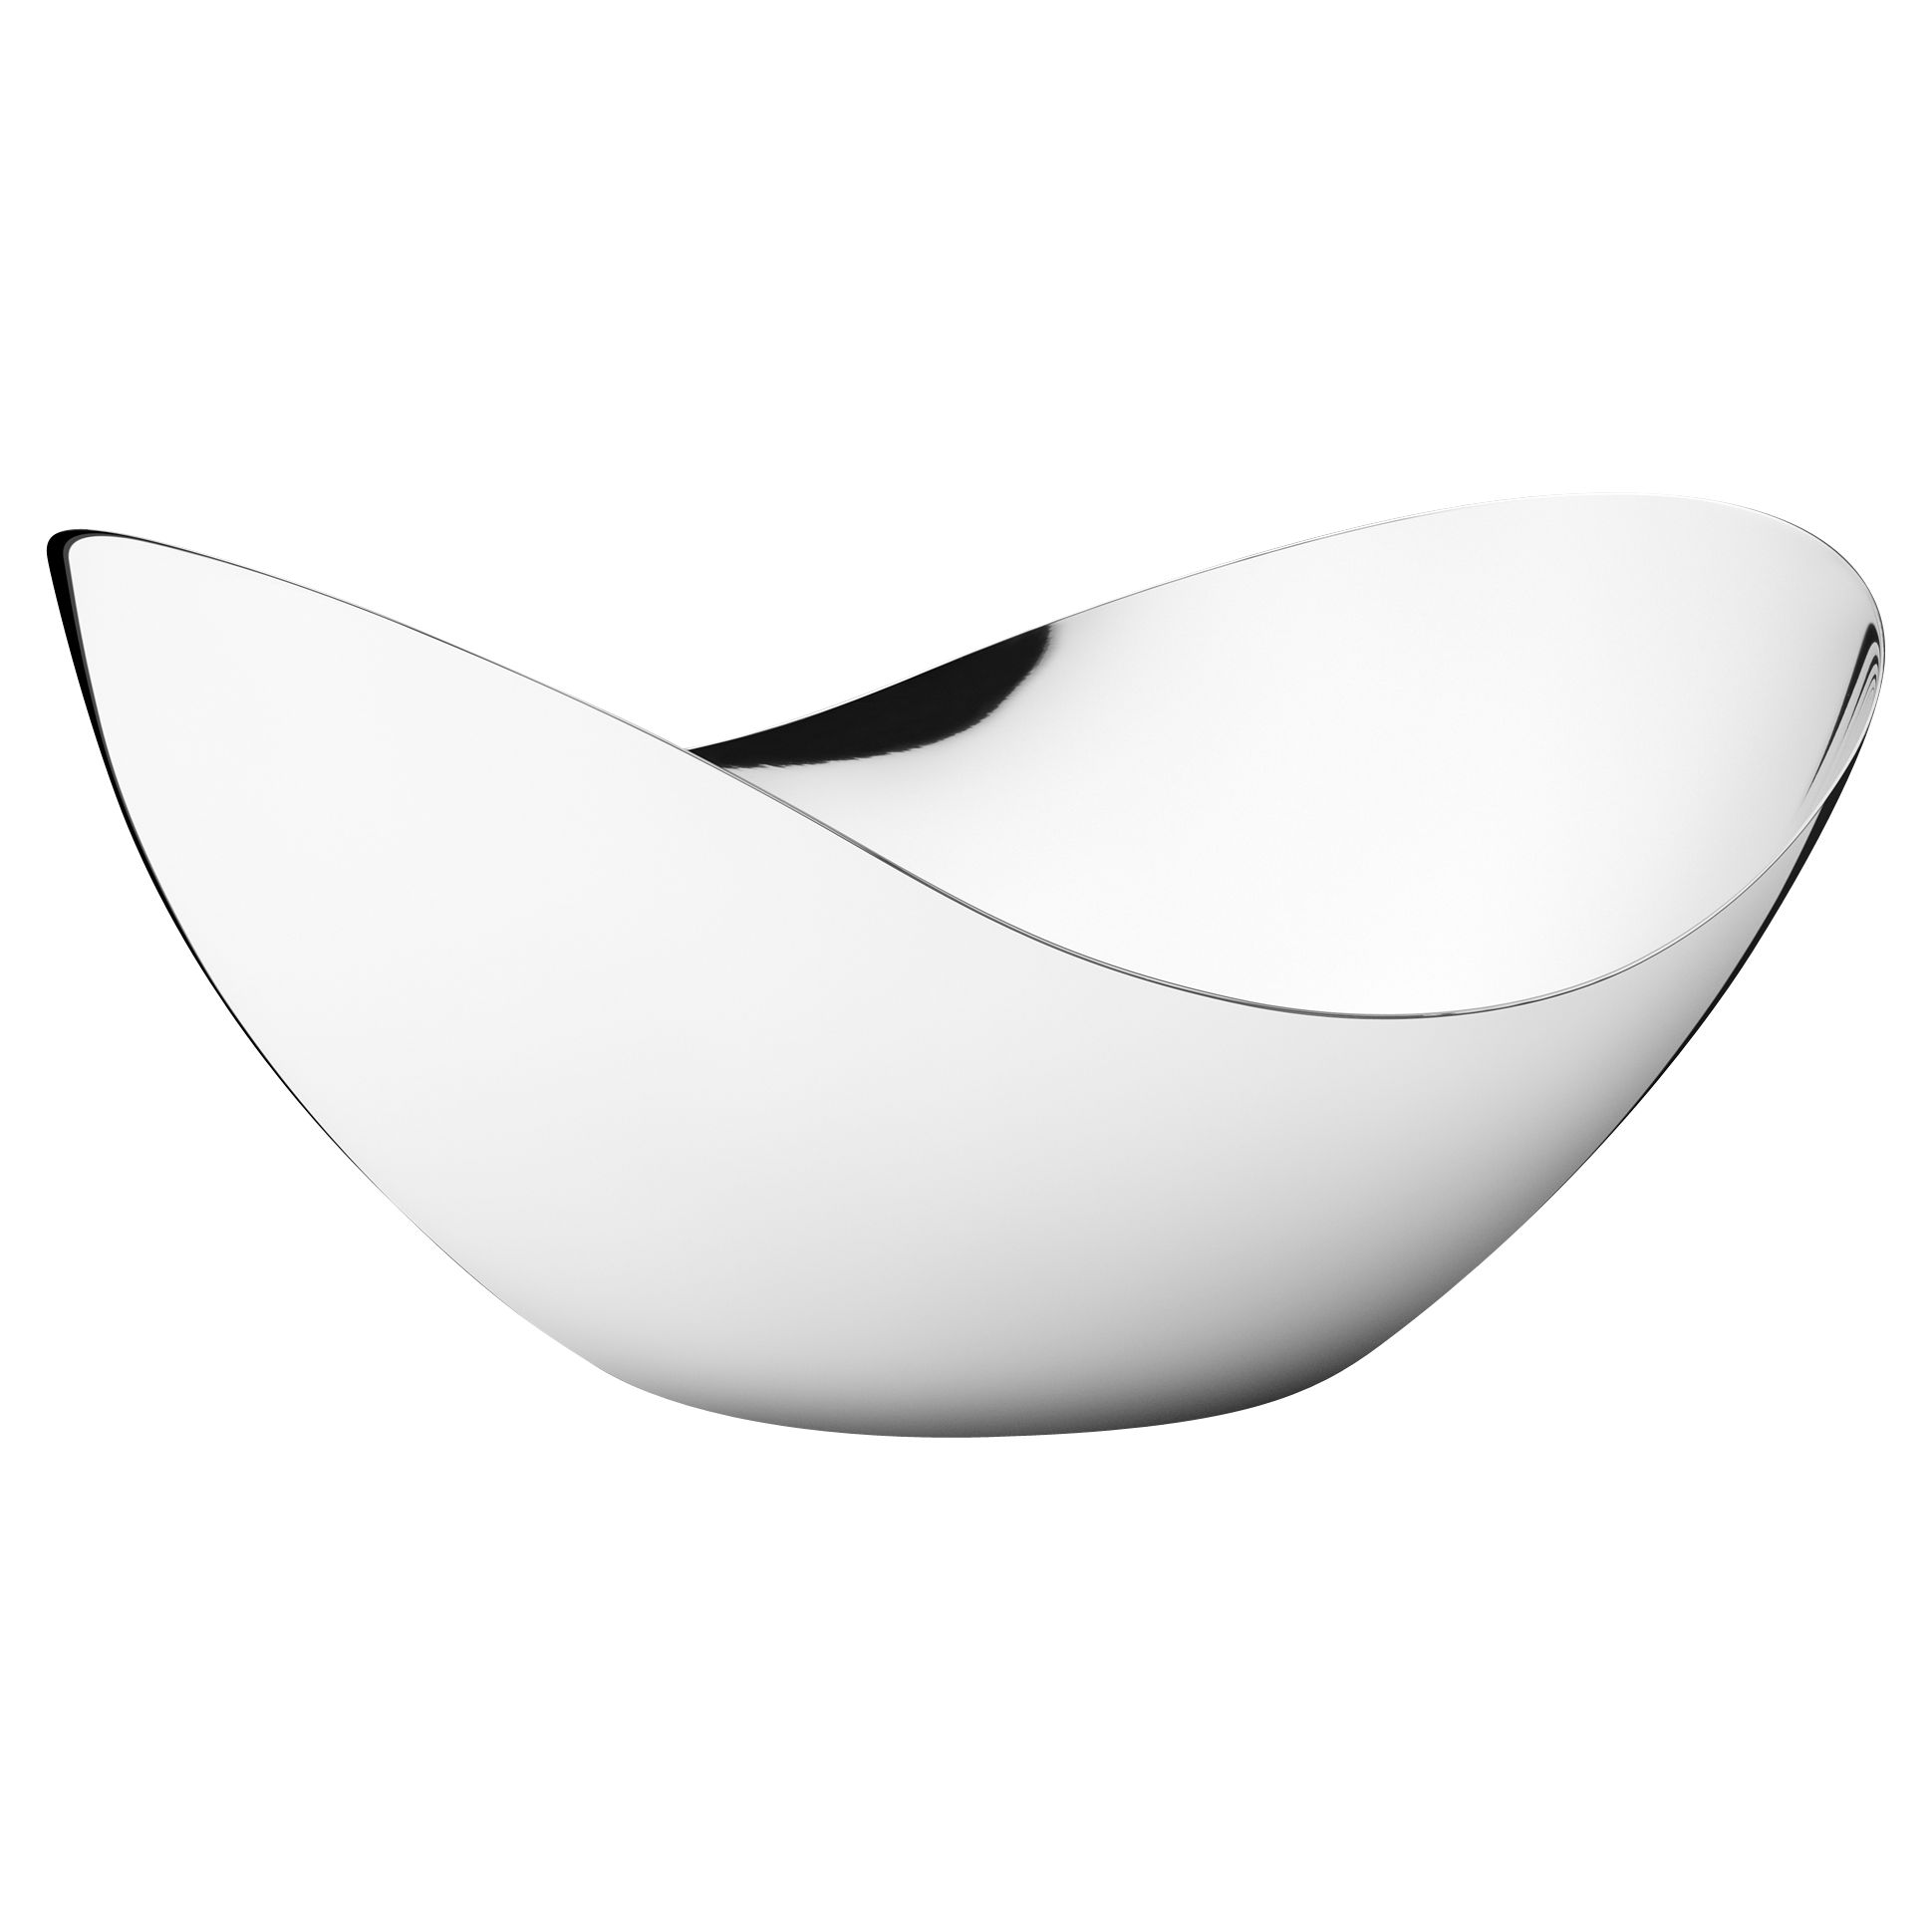 Georg Jensen Georg Jensen Bloom Bowl